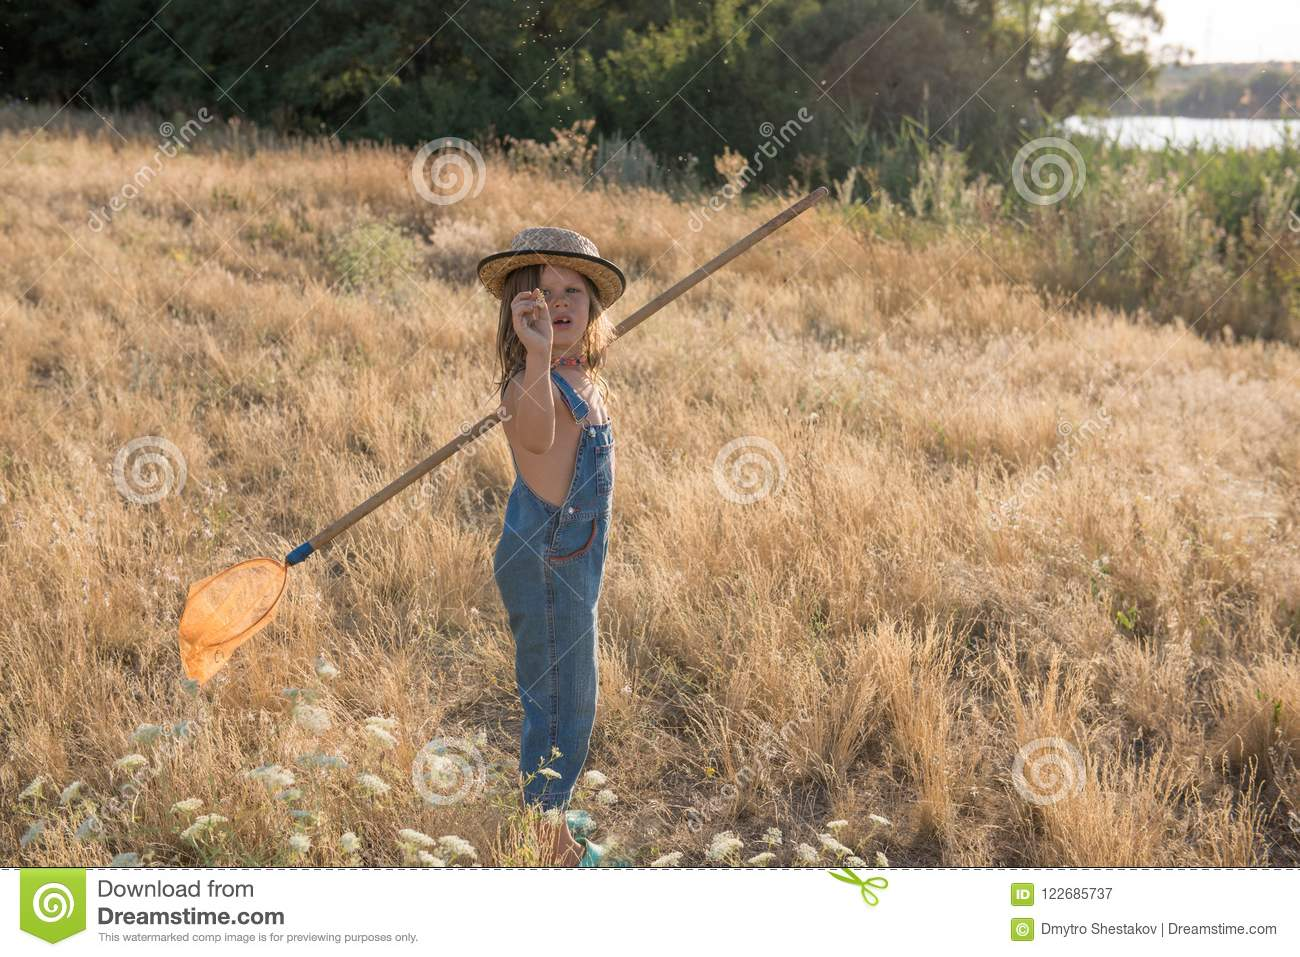 Child with a insect net catches butterfly